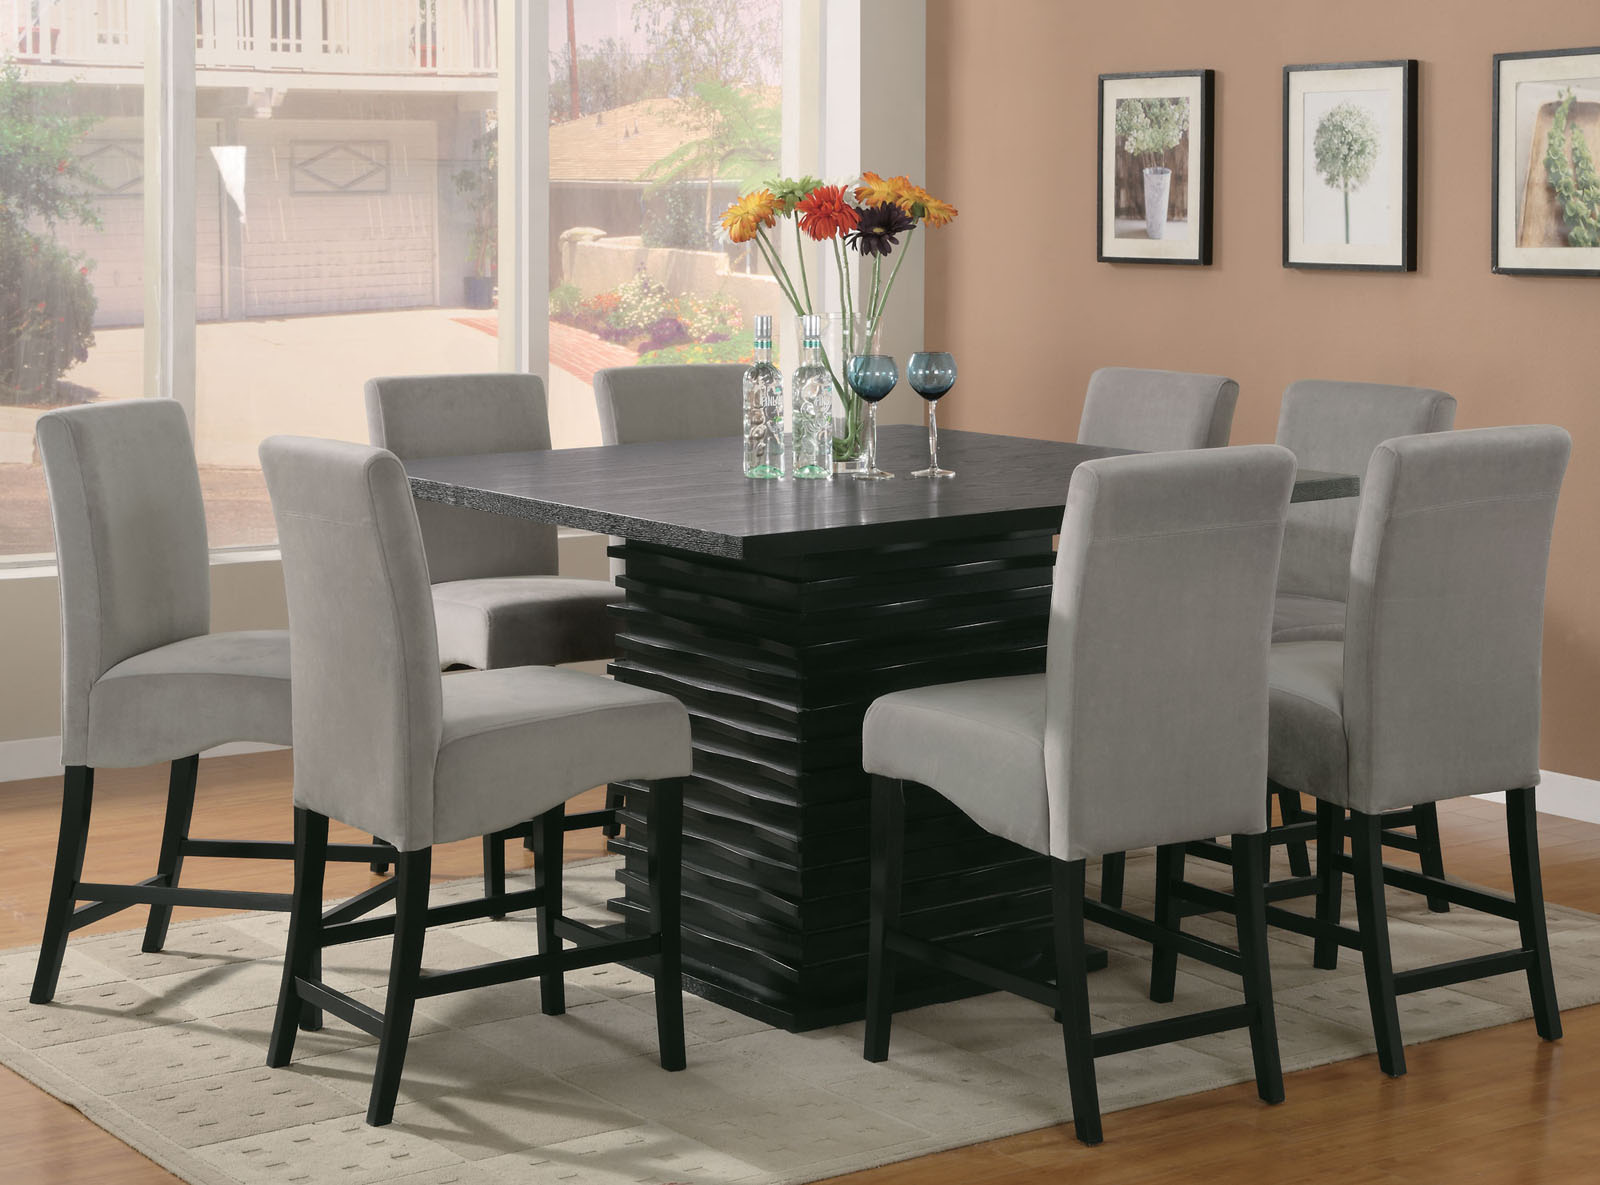 8 Chair Dining Set Coaster Stanton 9pc Counter Height Dining Set In Black With Gray Chairs 102068gry